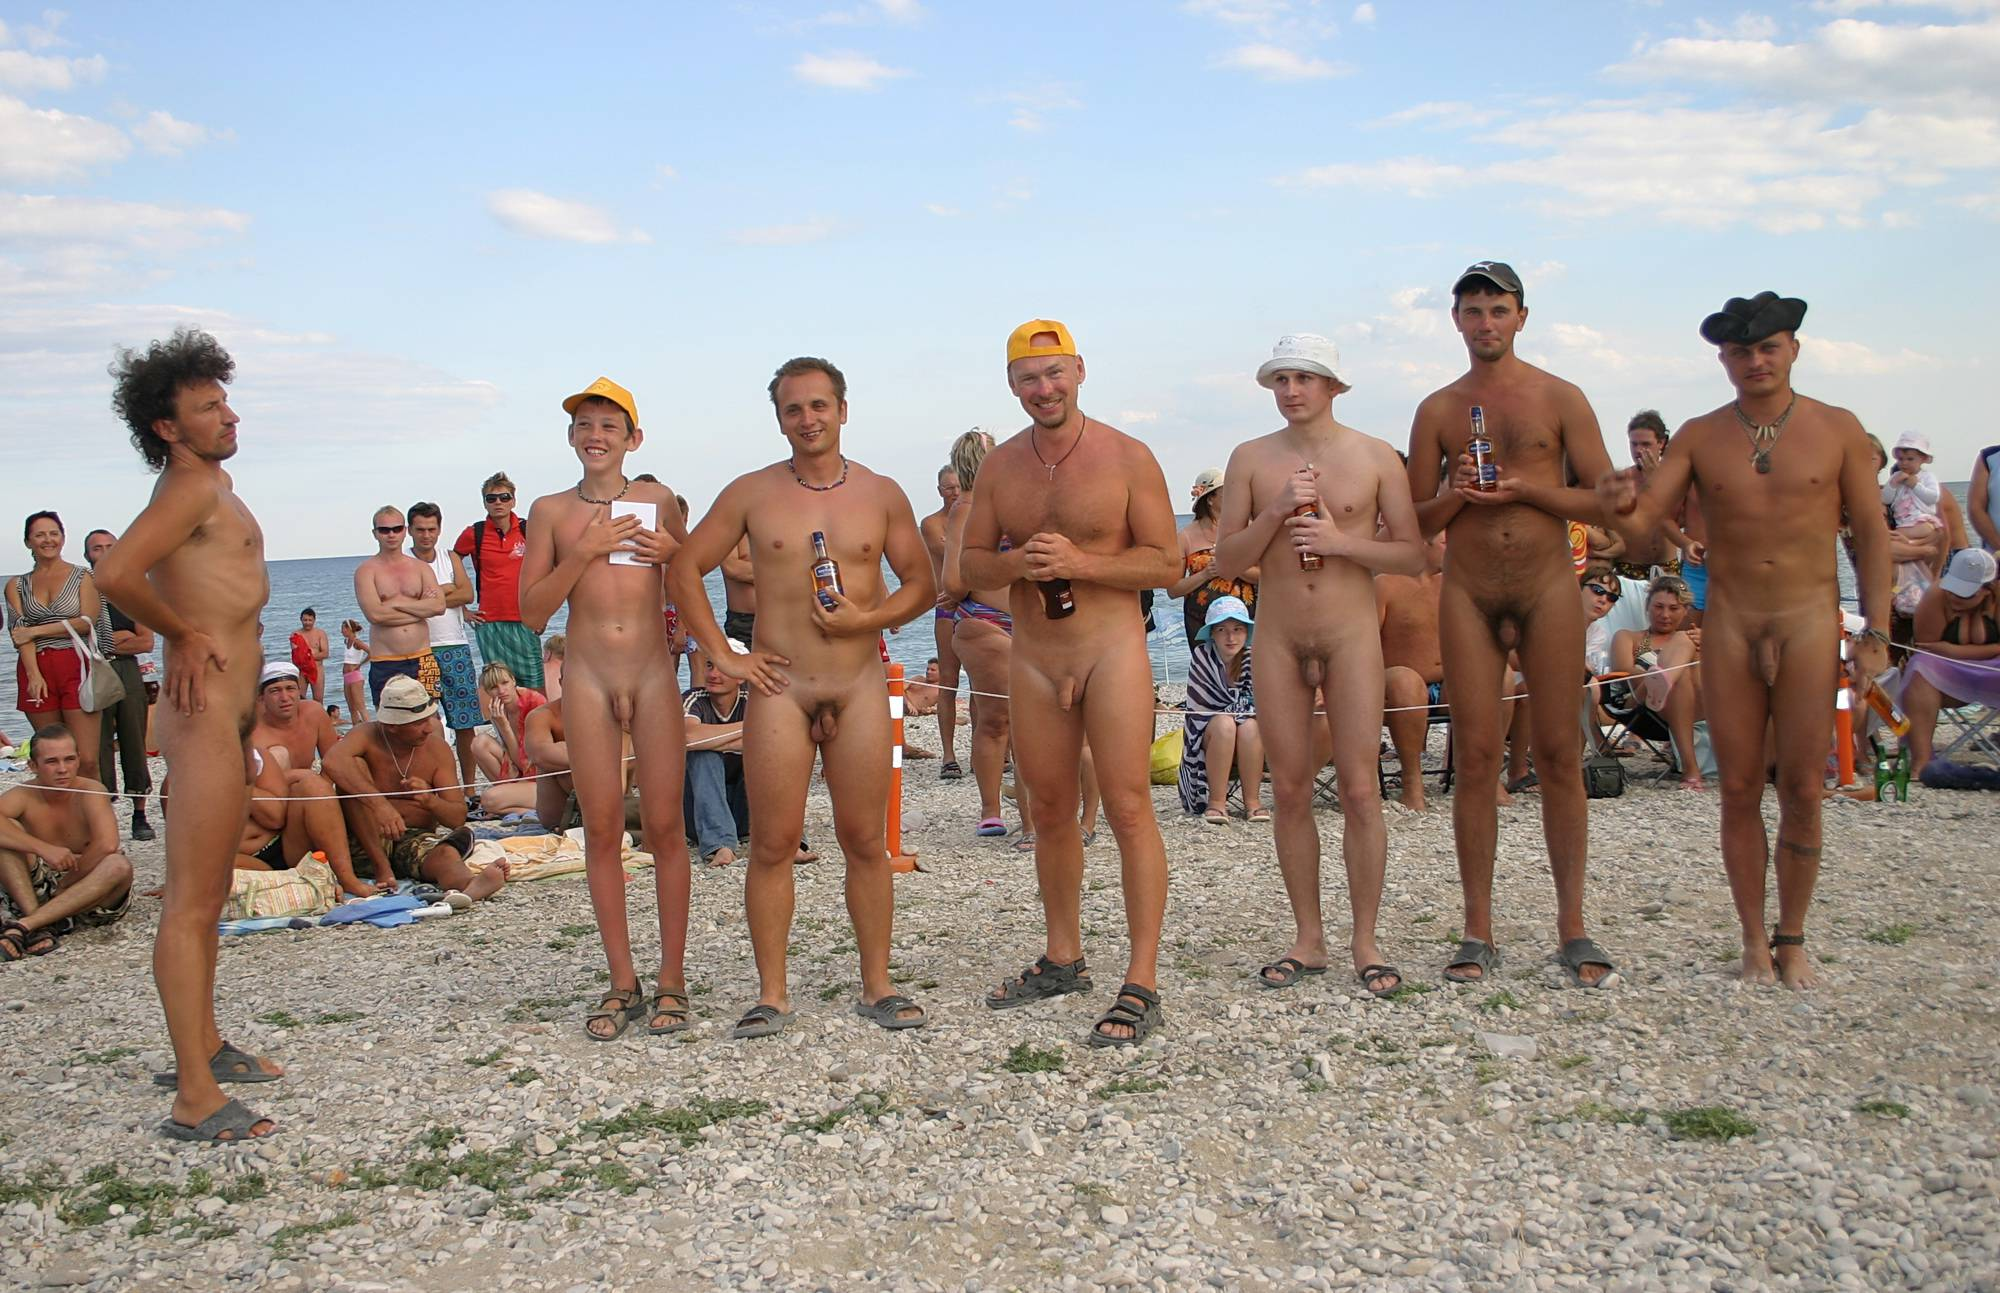 Nudist Pics Profile and Group Dancing - 1